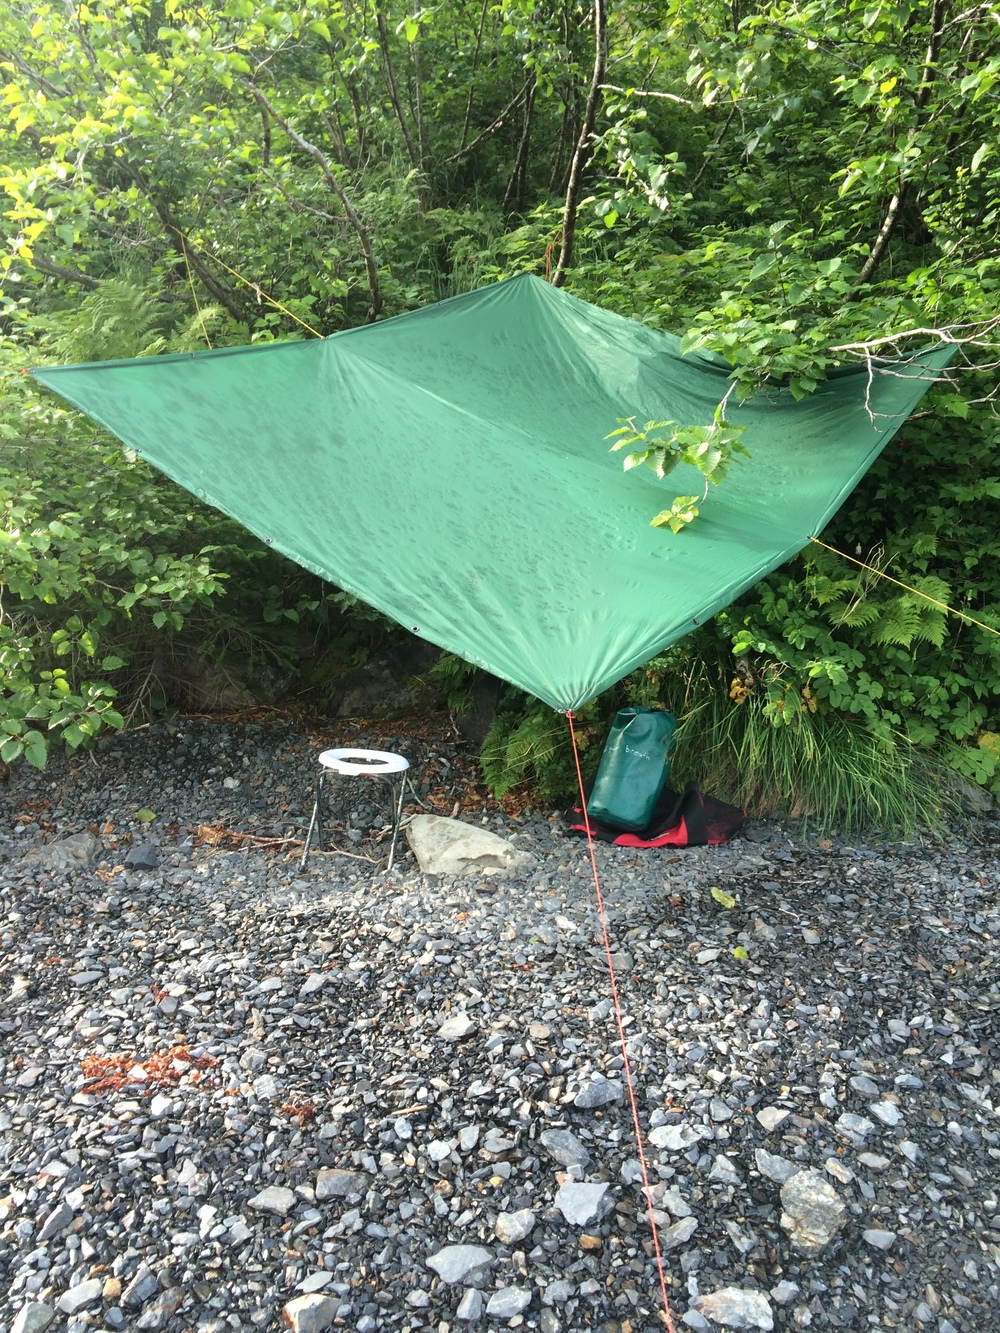 Bathroom set up in KFNP. Notice the dry spot under the tarp after a short rainfall. Quality tarpmanship.